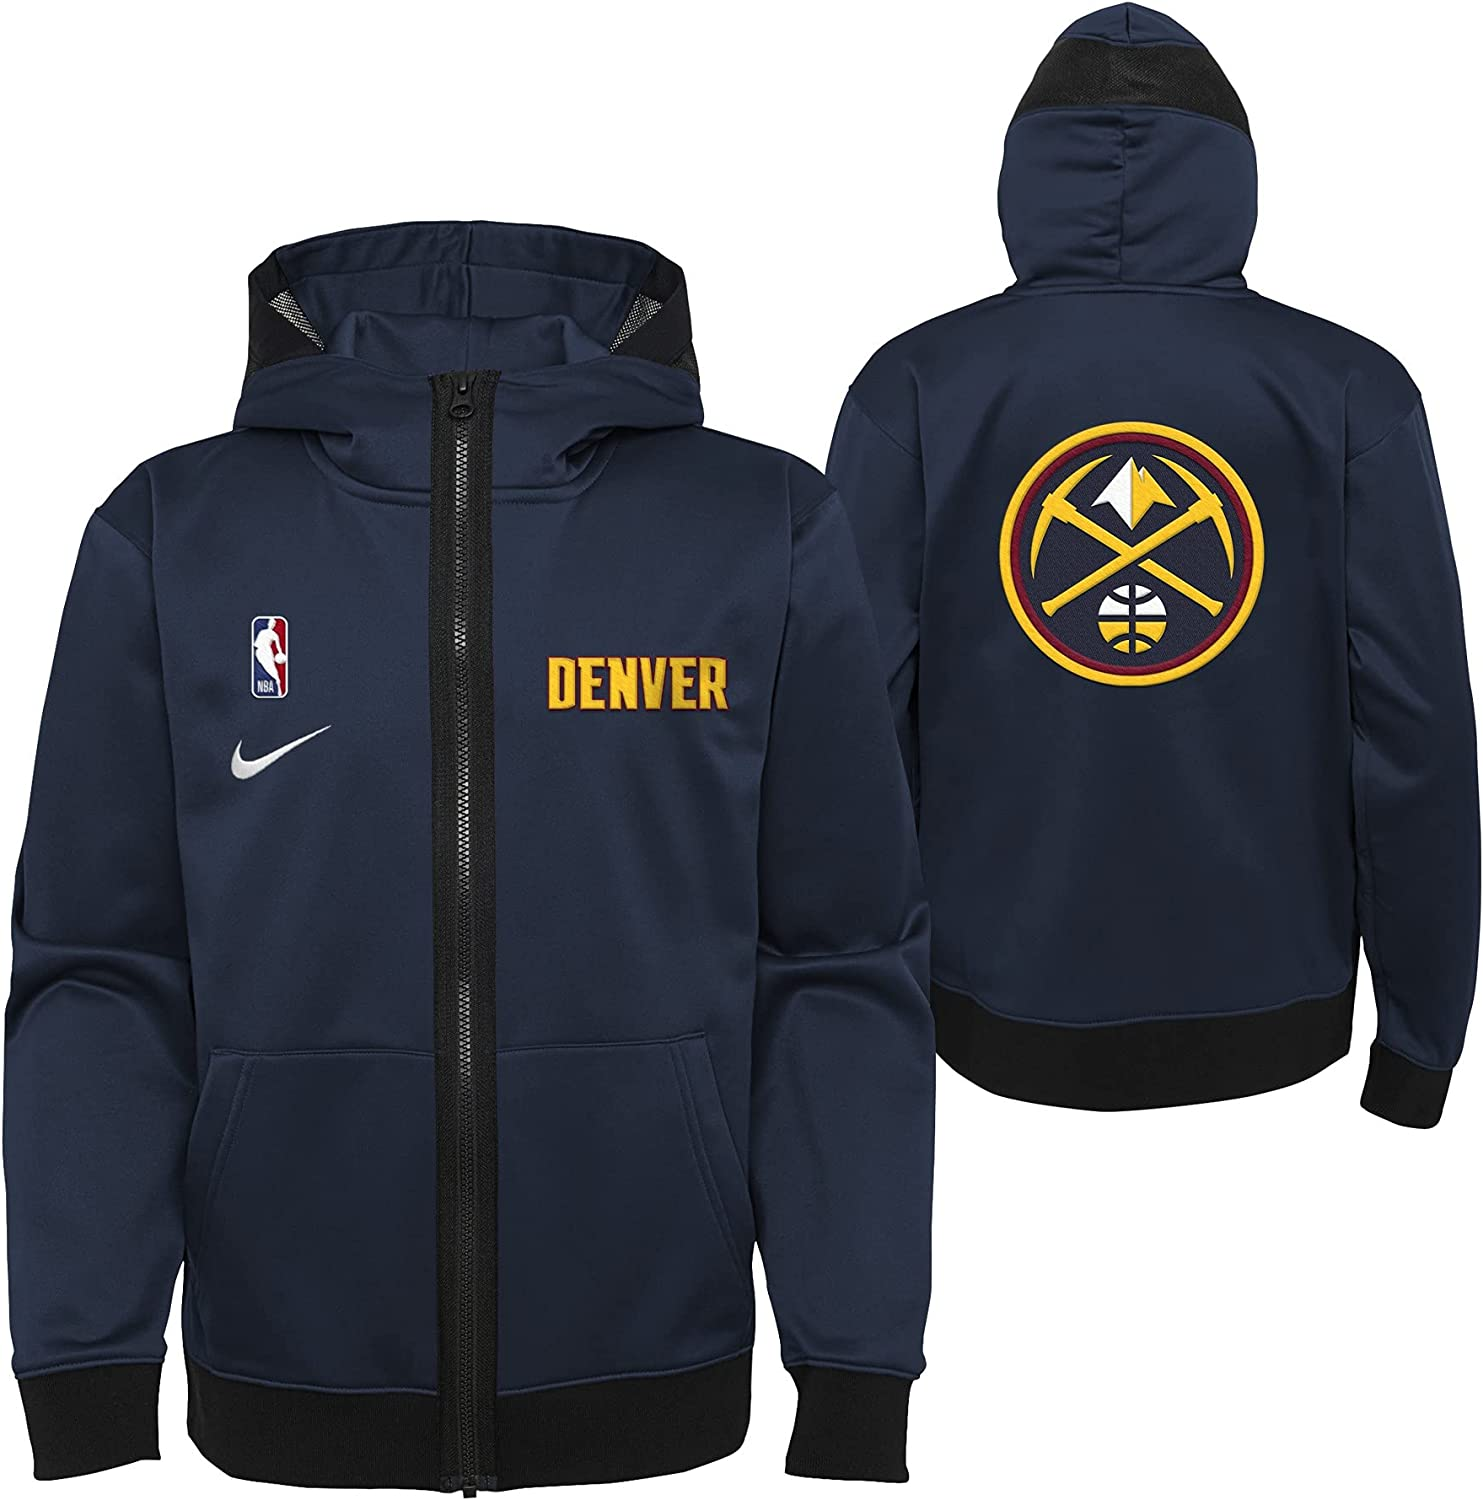 Nike NBA Boys 8-20 Youth Ful Lightweight Overlight Brand new Hooded Pull All items free shipping